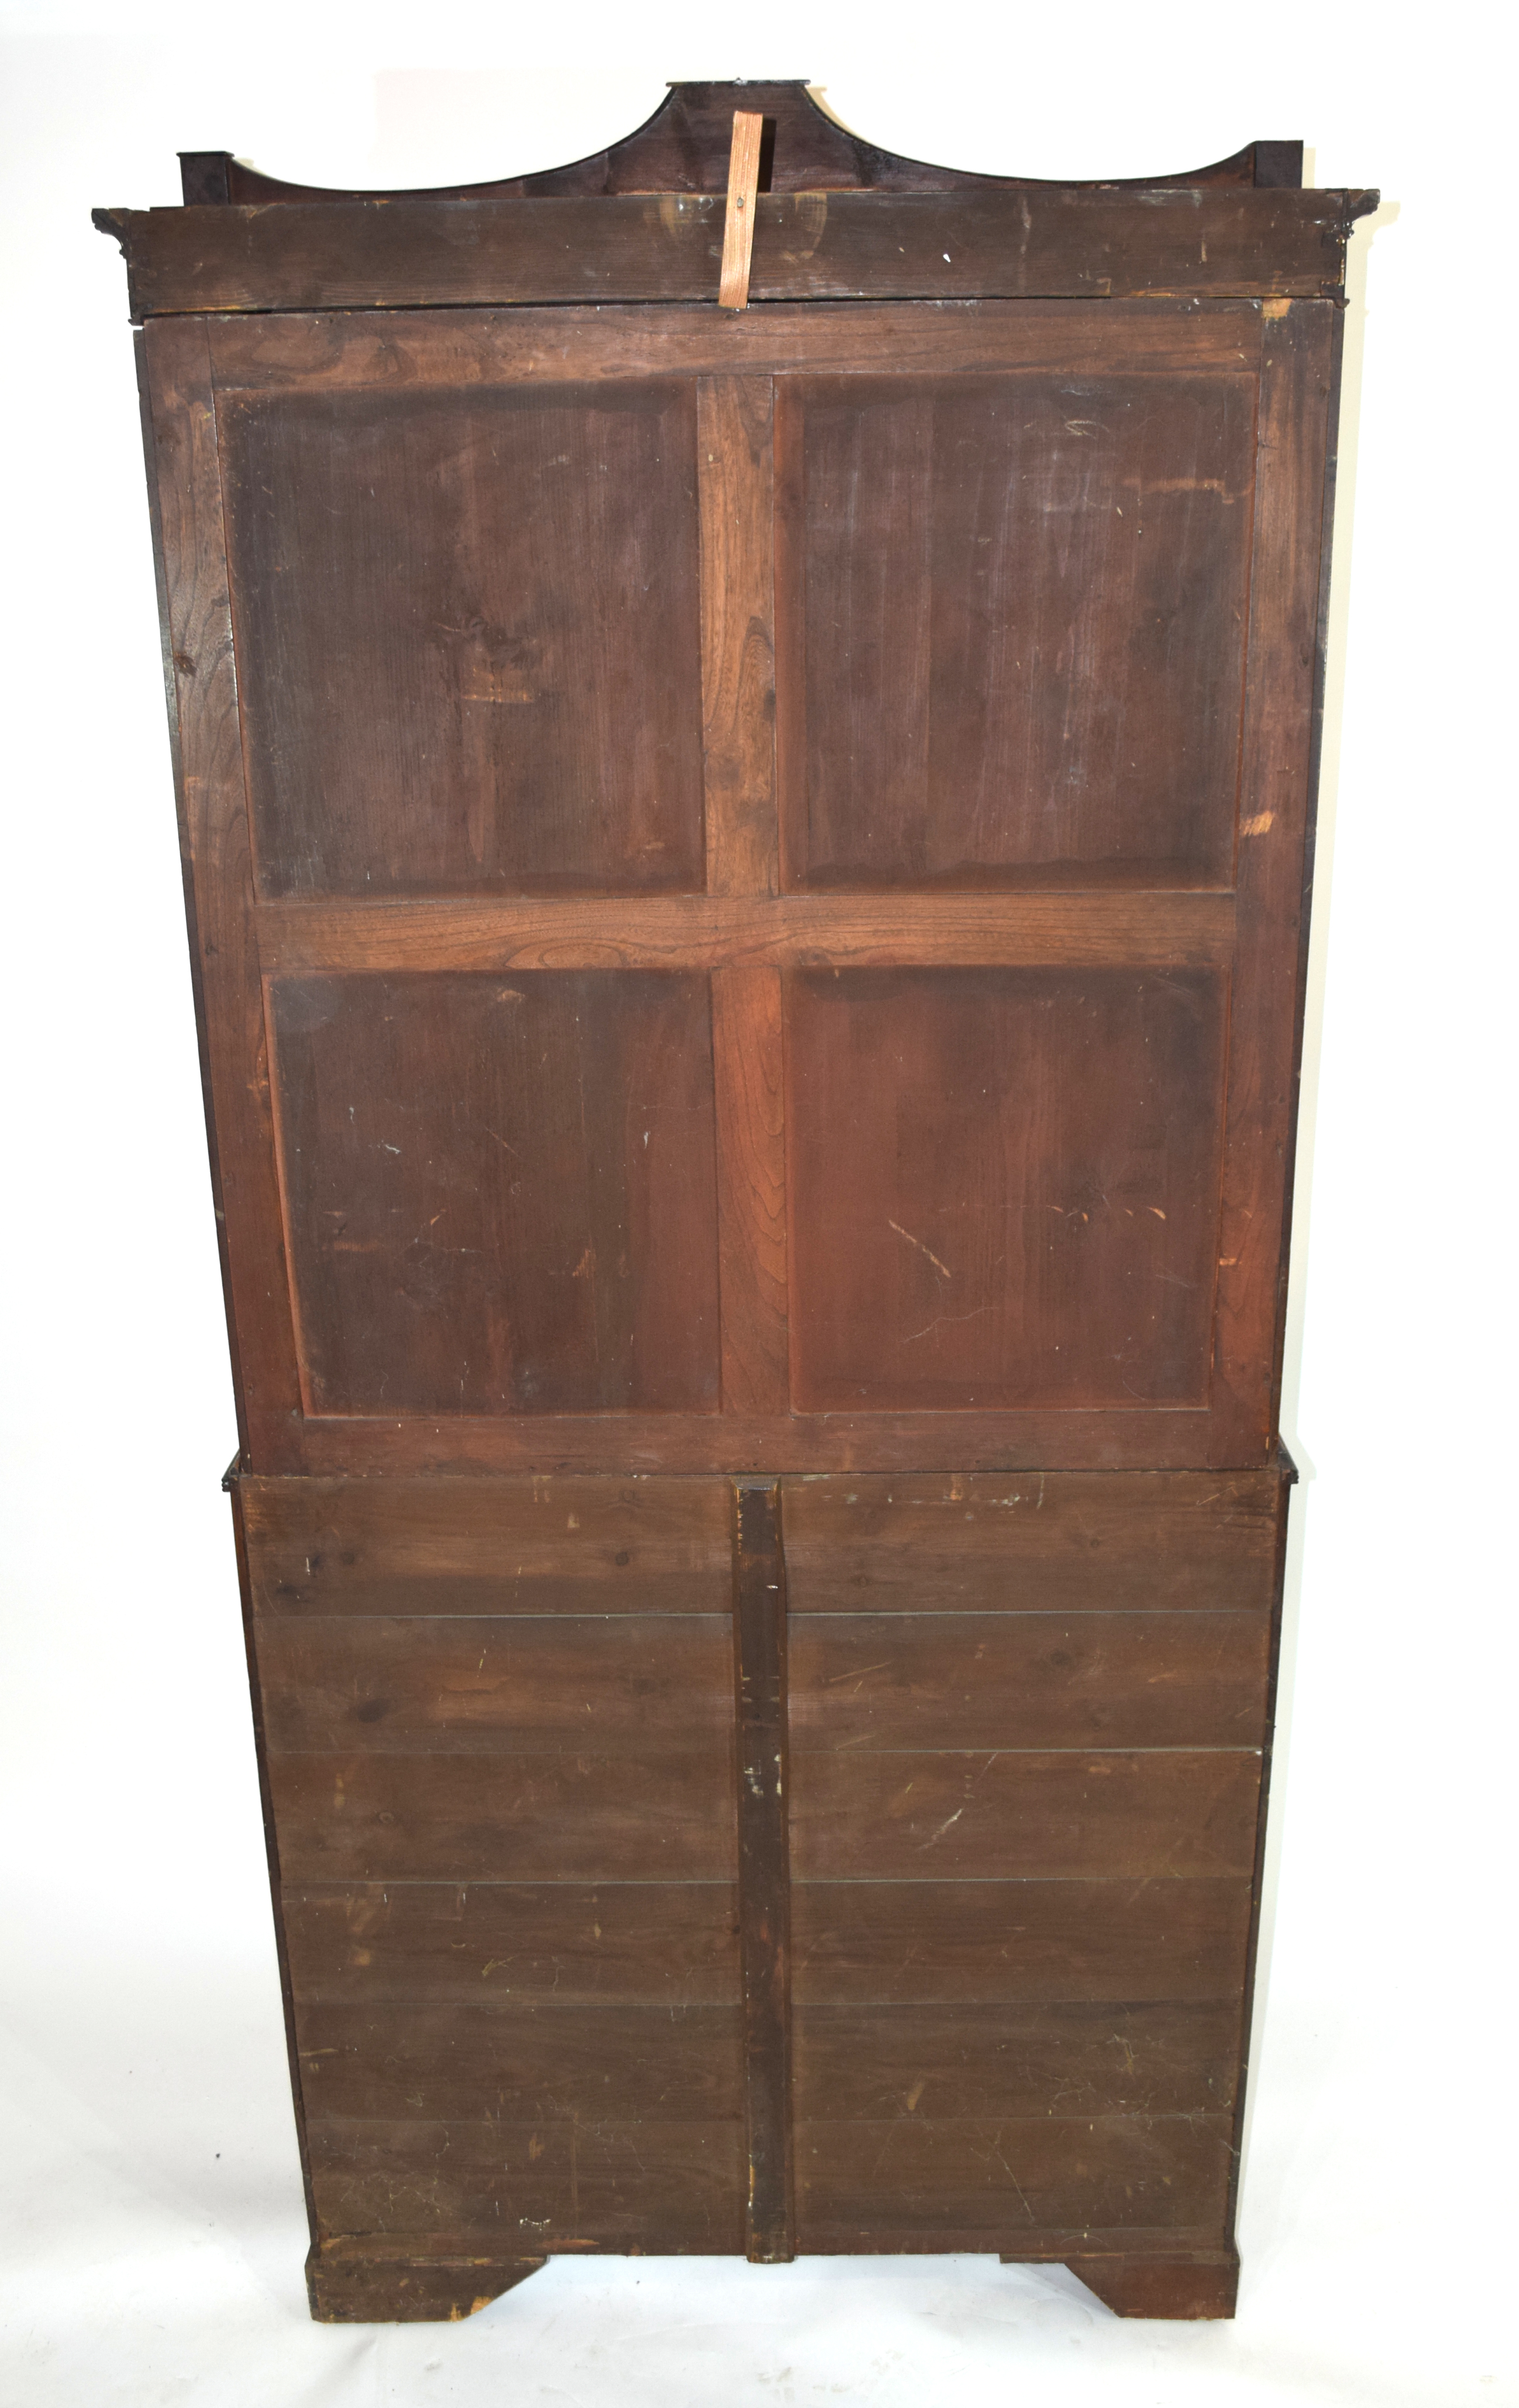 Georgian mahogany secretaire cabinet, top section with a shaped cornice over astragal glazed doors - Image 6 of 6